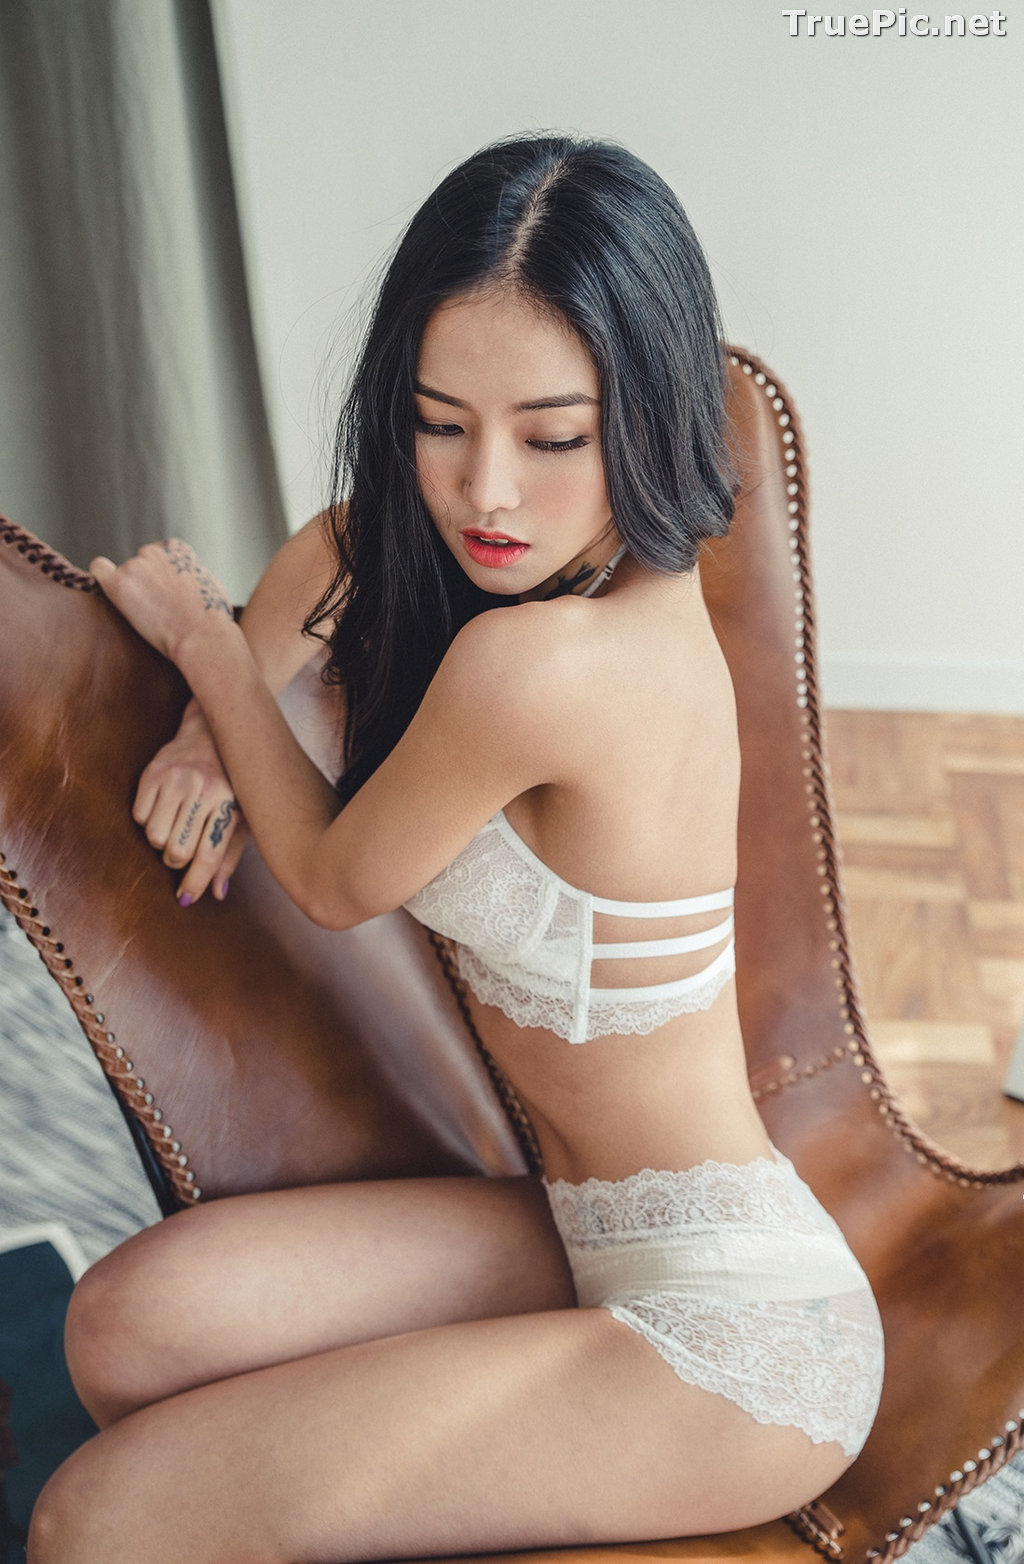 Image Korean Fashion Model – Baek Ye Jin – Sexy Lingerie Collection #6 - TruePic.net - Picture-3